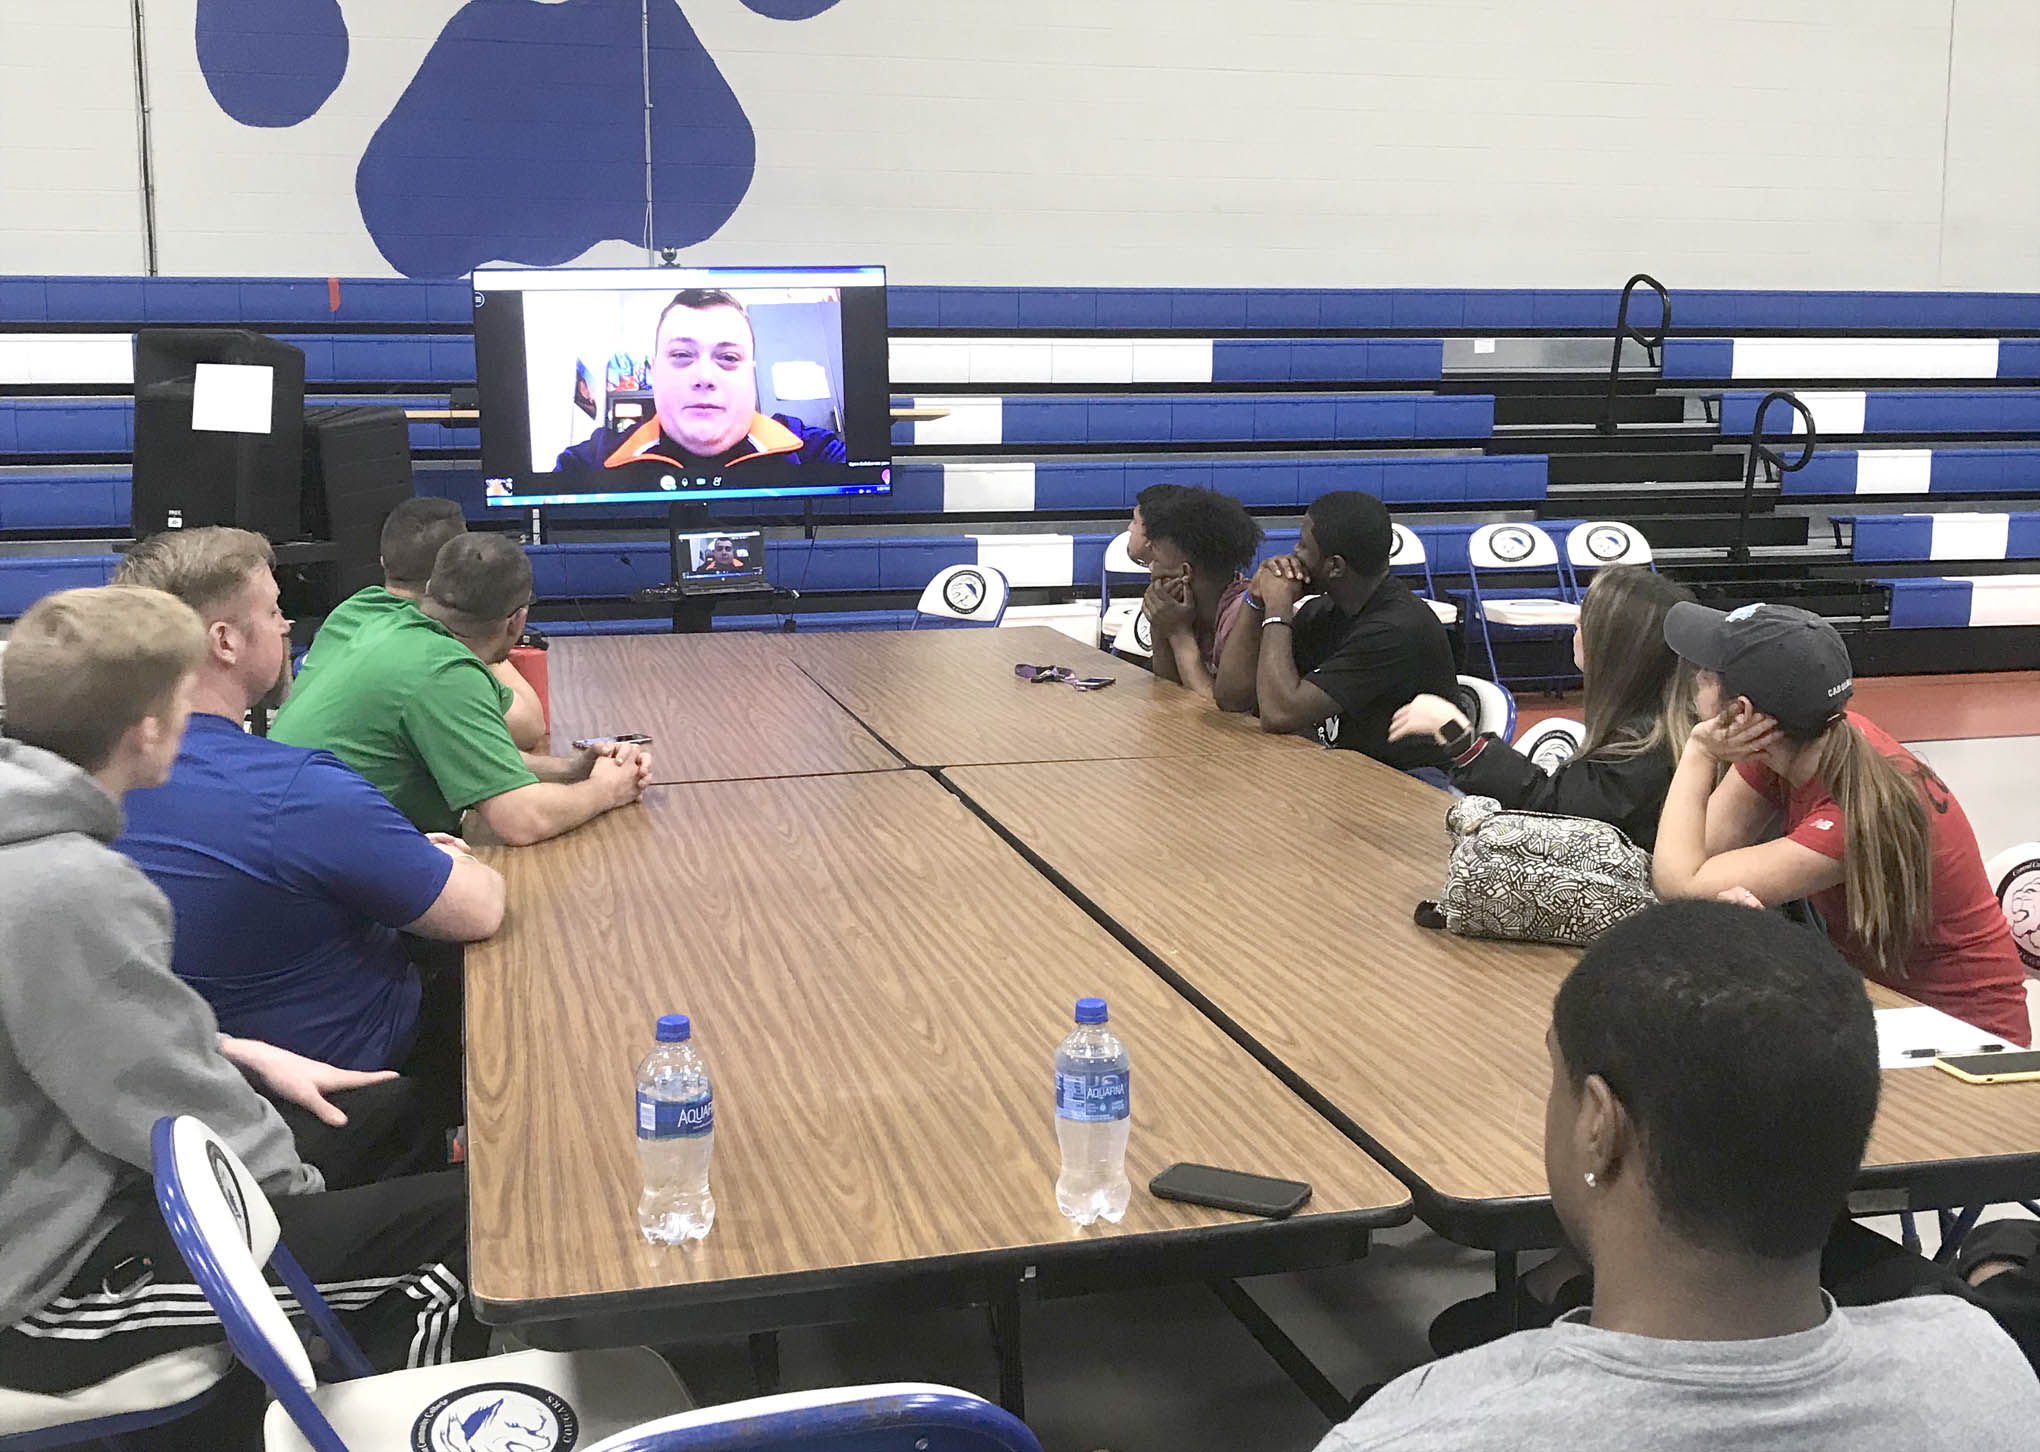 Click to enlarge,  Central Carolina Community College Health & Fitness Science students visit with Sanford native and University of Virginia women's basketball athletic trainer Craig Oates, who conducted a Question and Answer session with the CCCC students and provided them a tour of the facilities via webcam. To learn more about the CCCC Health & Fitness Science program, visit www.cccc.edu/curriculum/majors/hfs/.